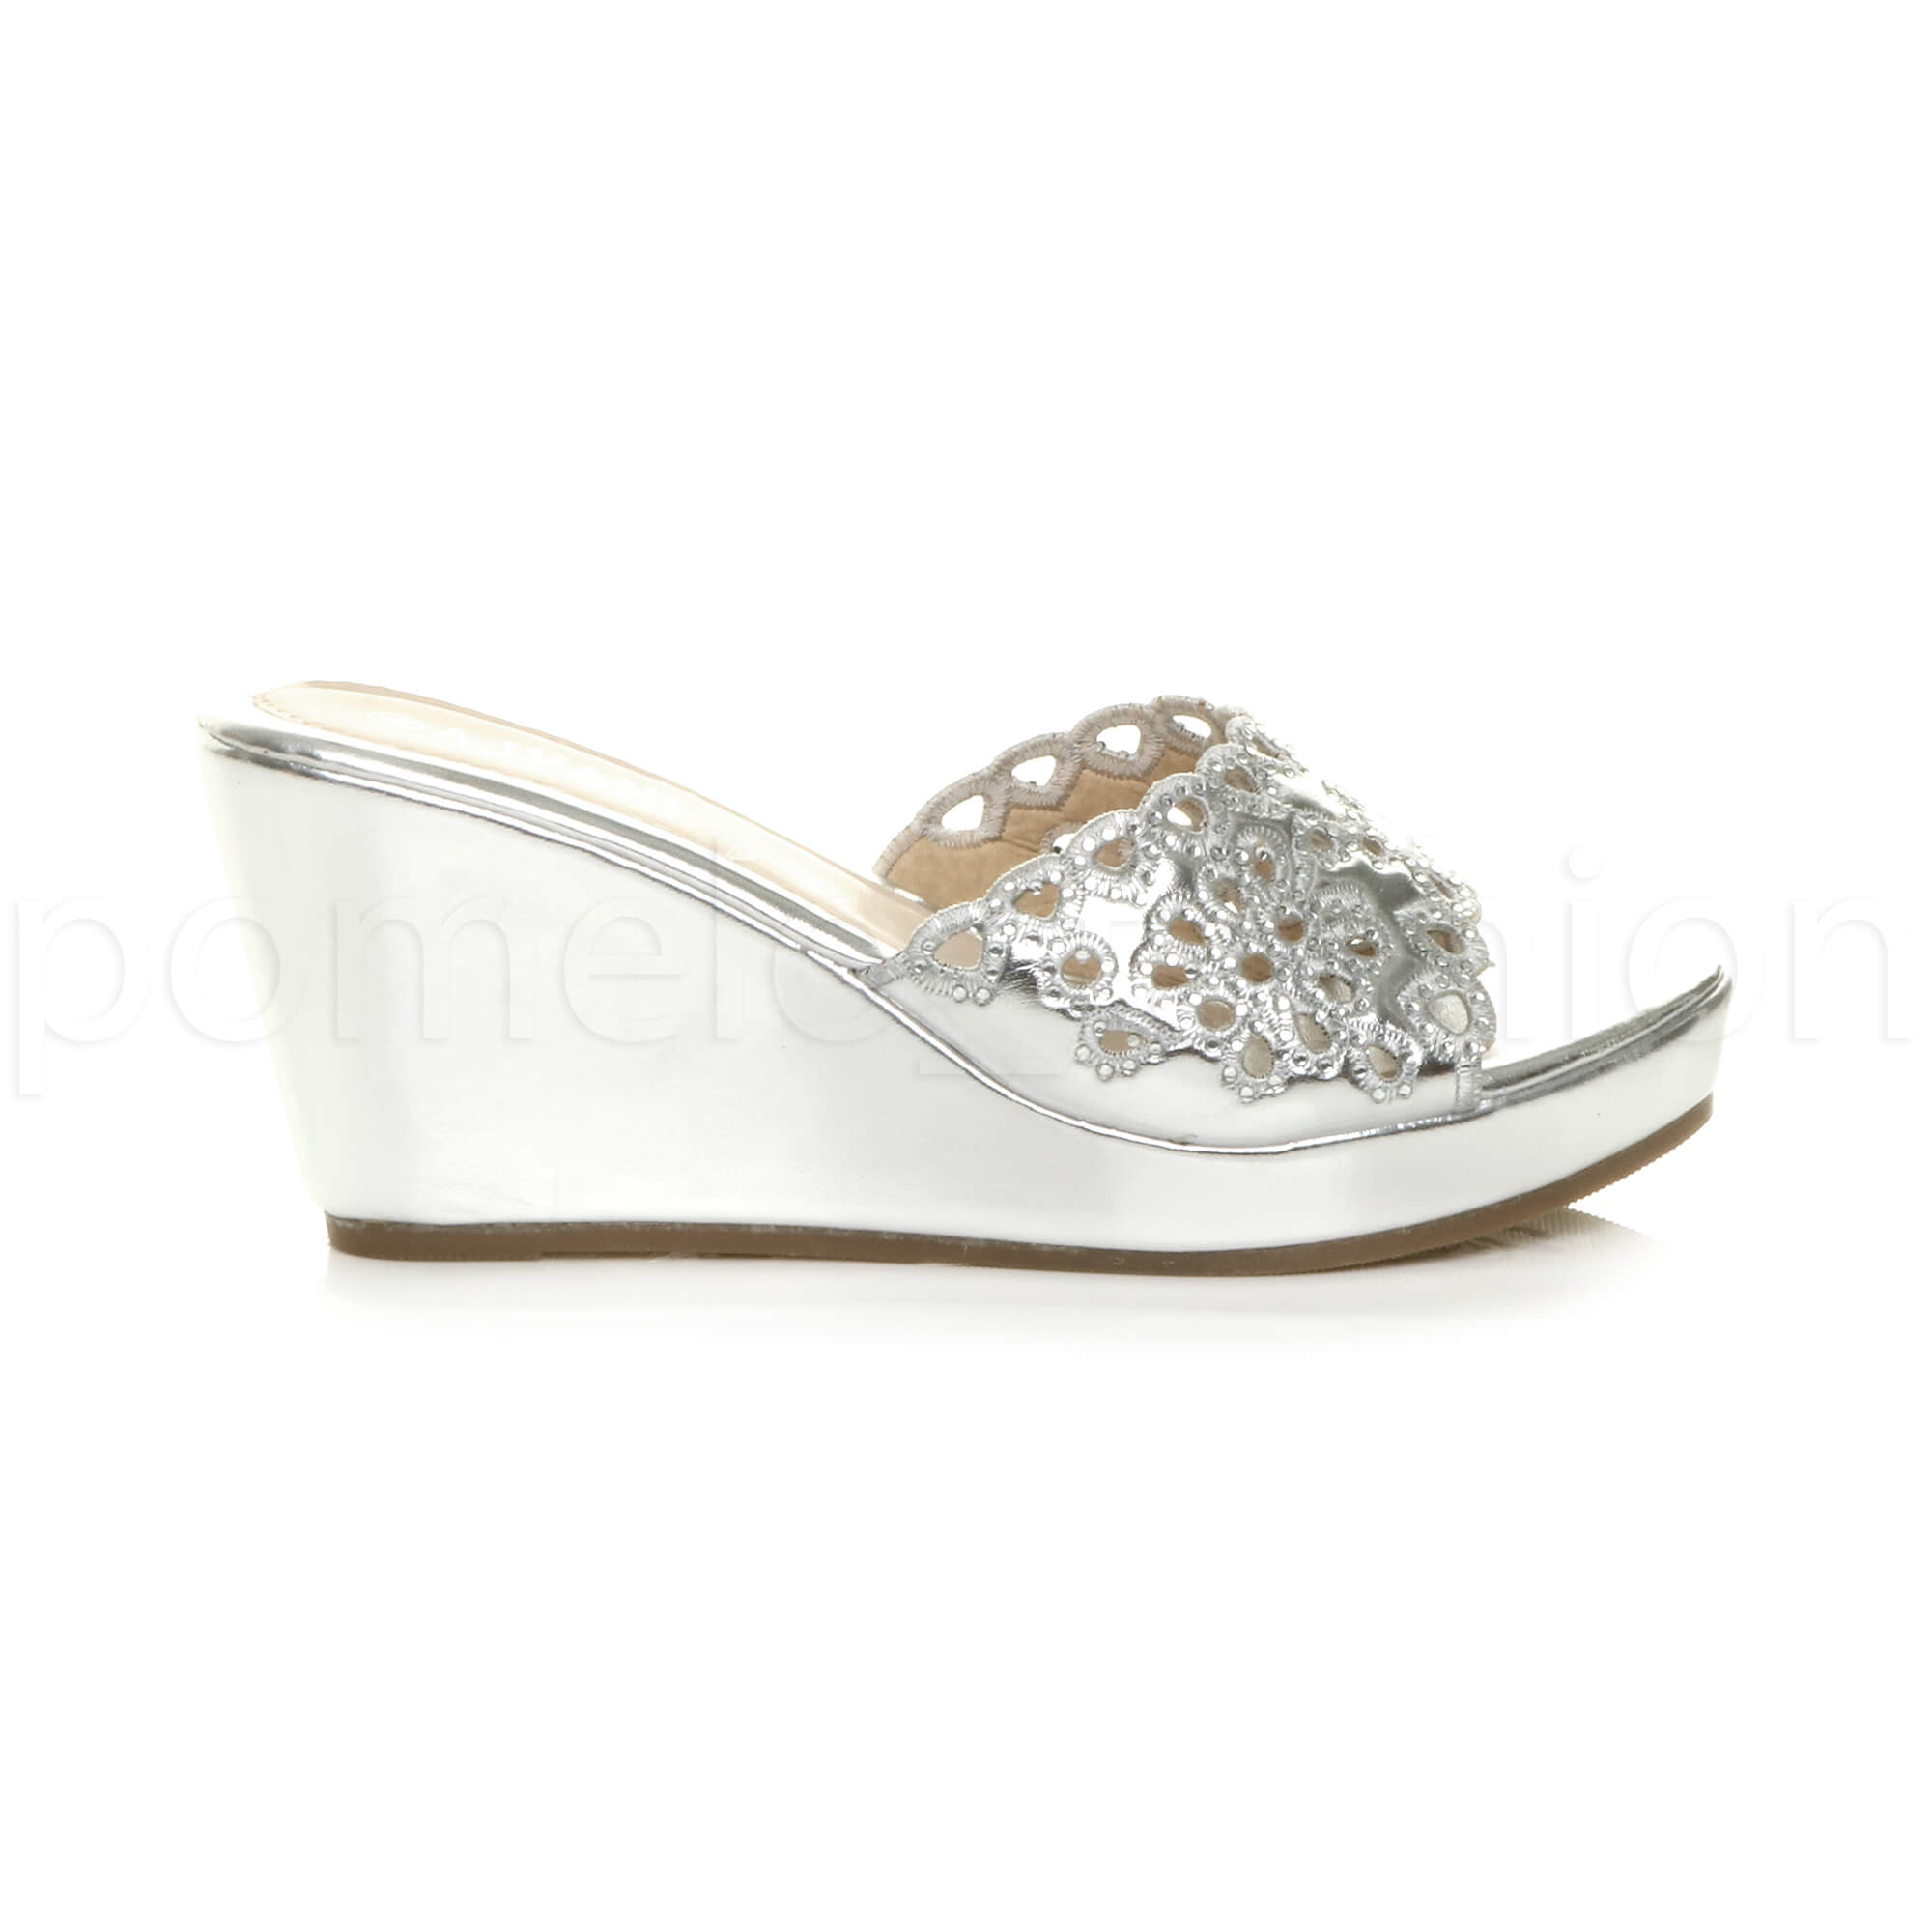 WOMENS LADIES PLATFORM HIGH WEDGE CUT OUT SLIP ON DIAMANTE MULES SANDALS SIZE